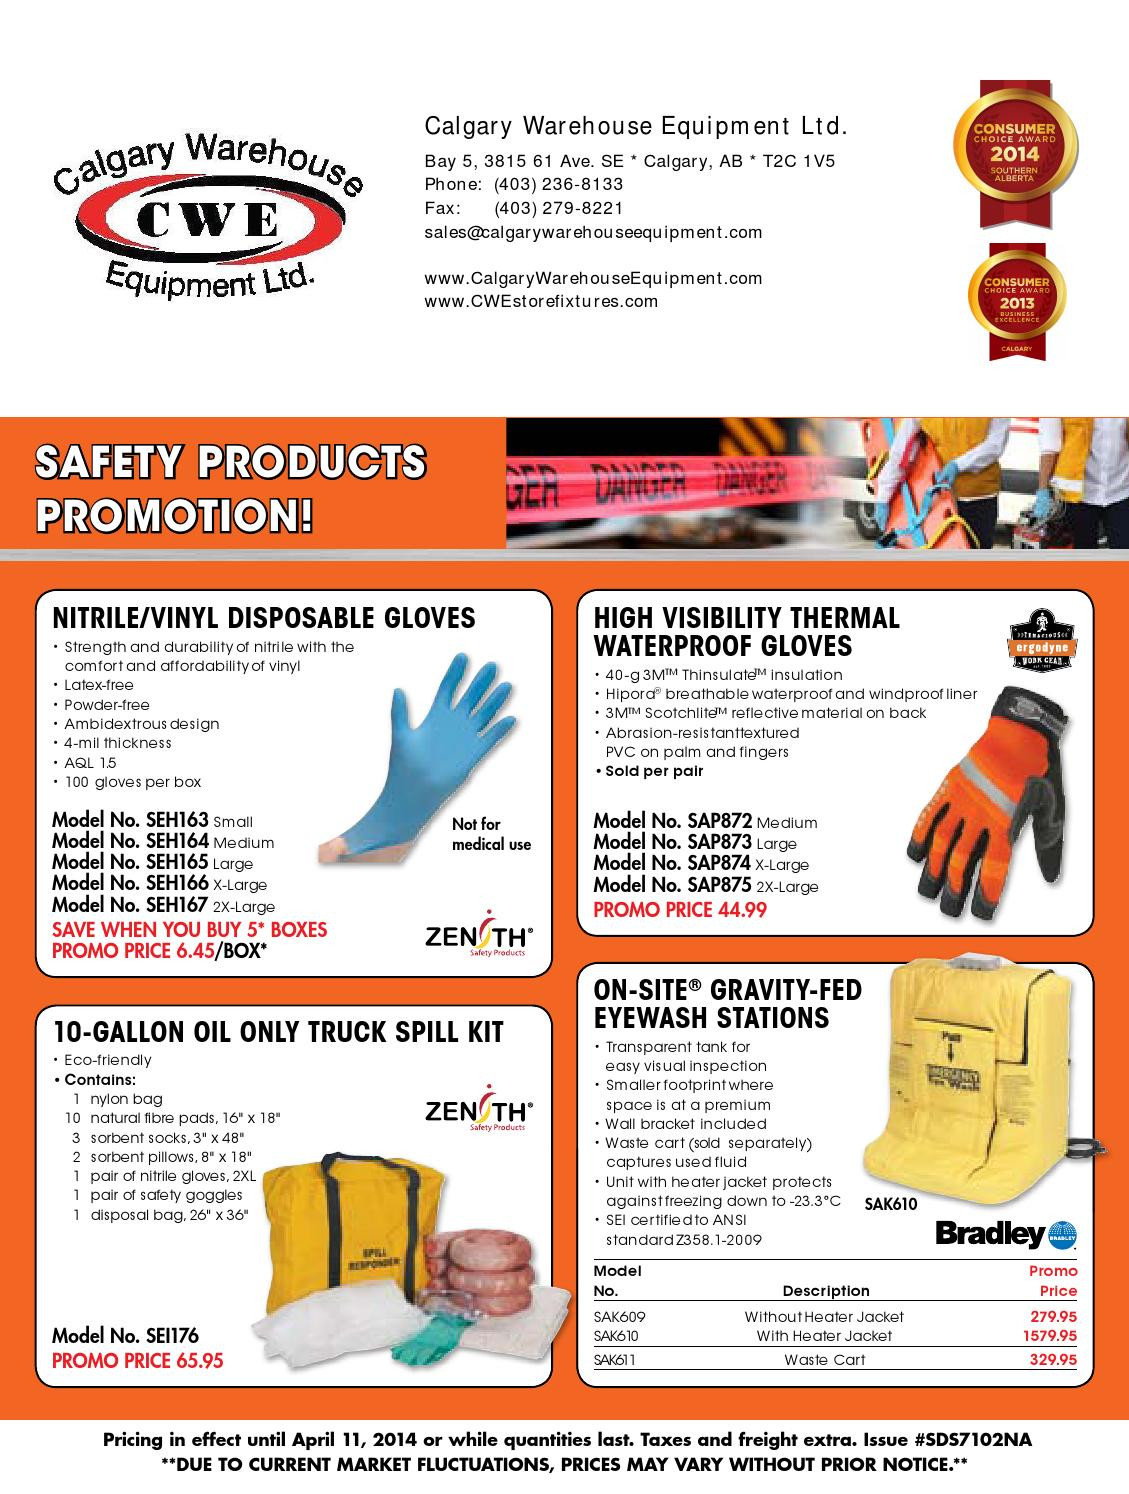 Spring Safety Sales Flyer 2014 By Calgary Warehouse